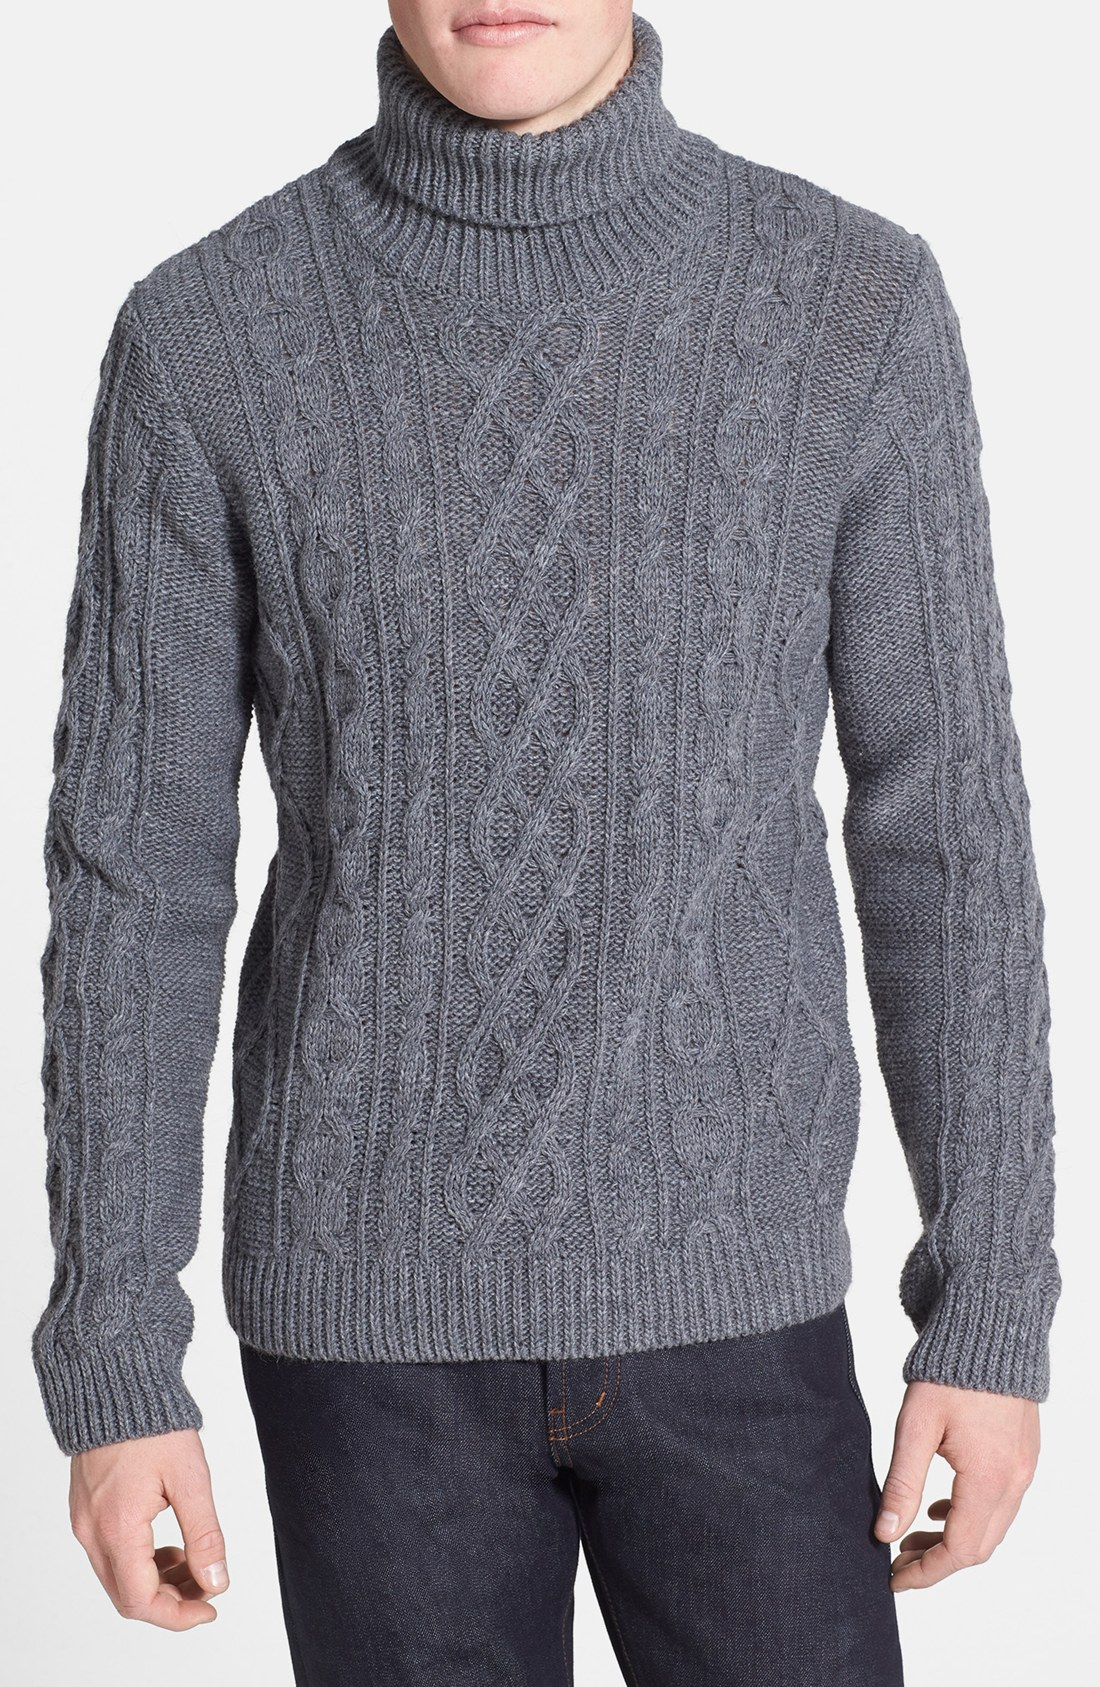 Sweater Knit : Topman chunky cable knit turtleneck sweater in gray for